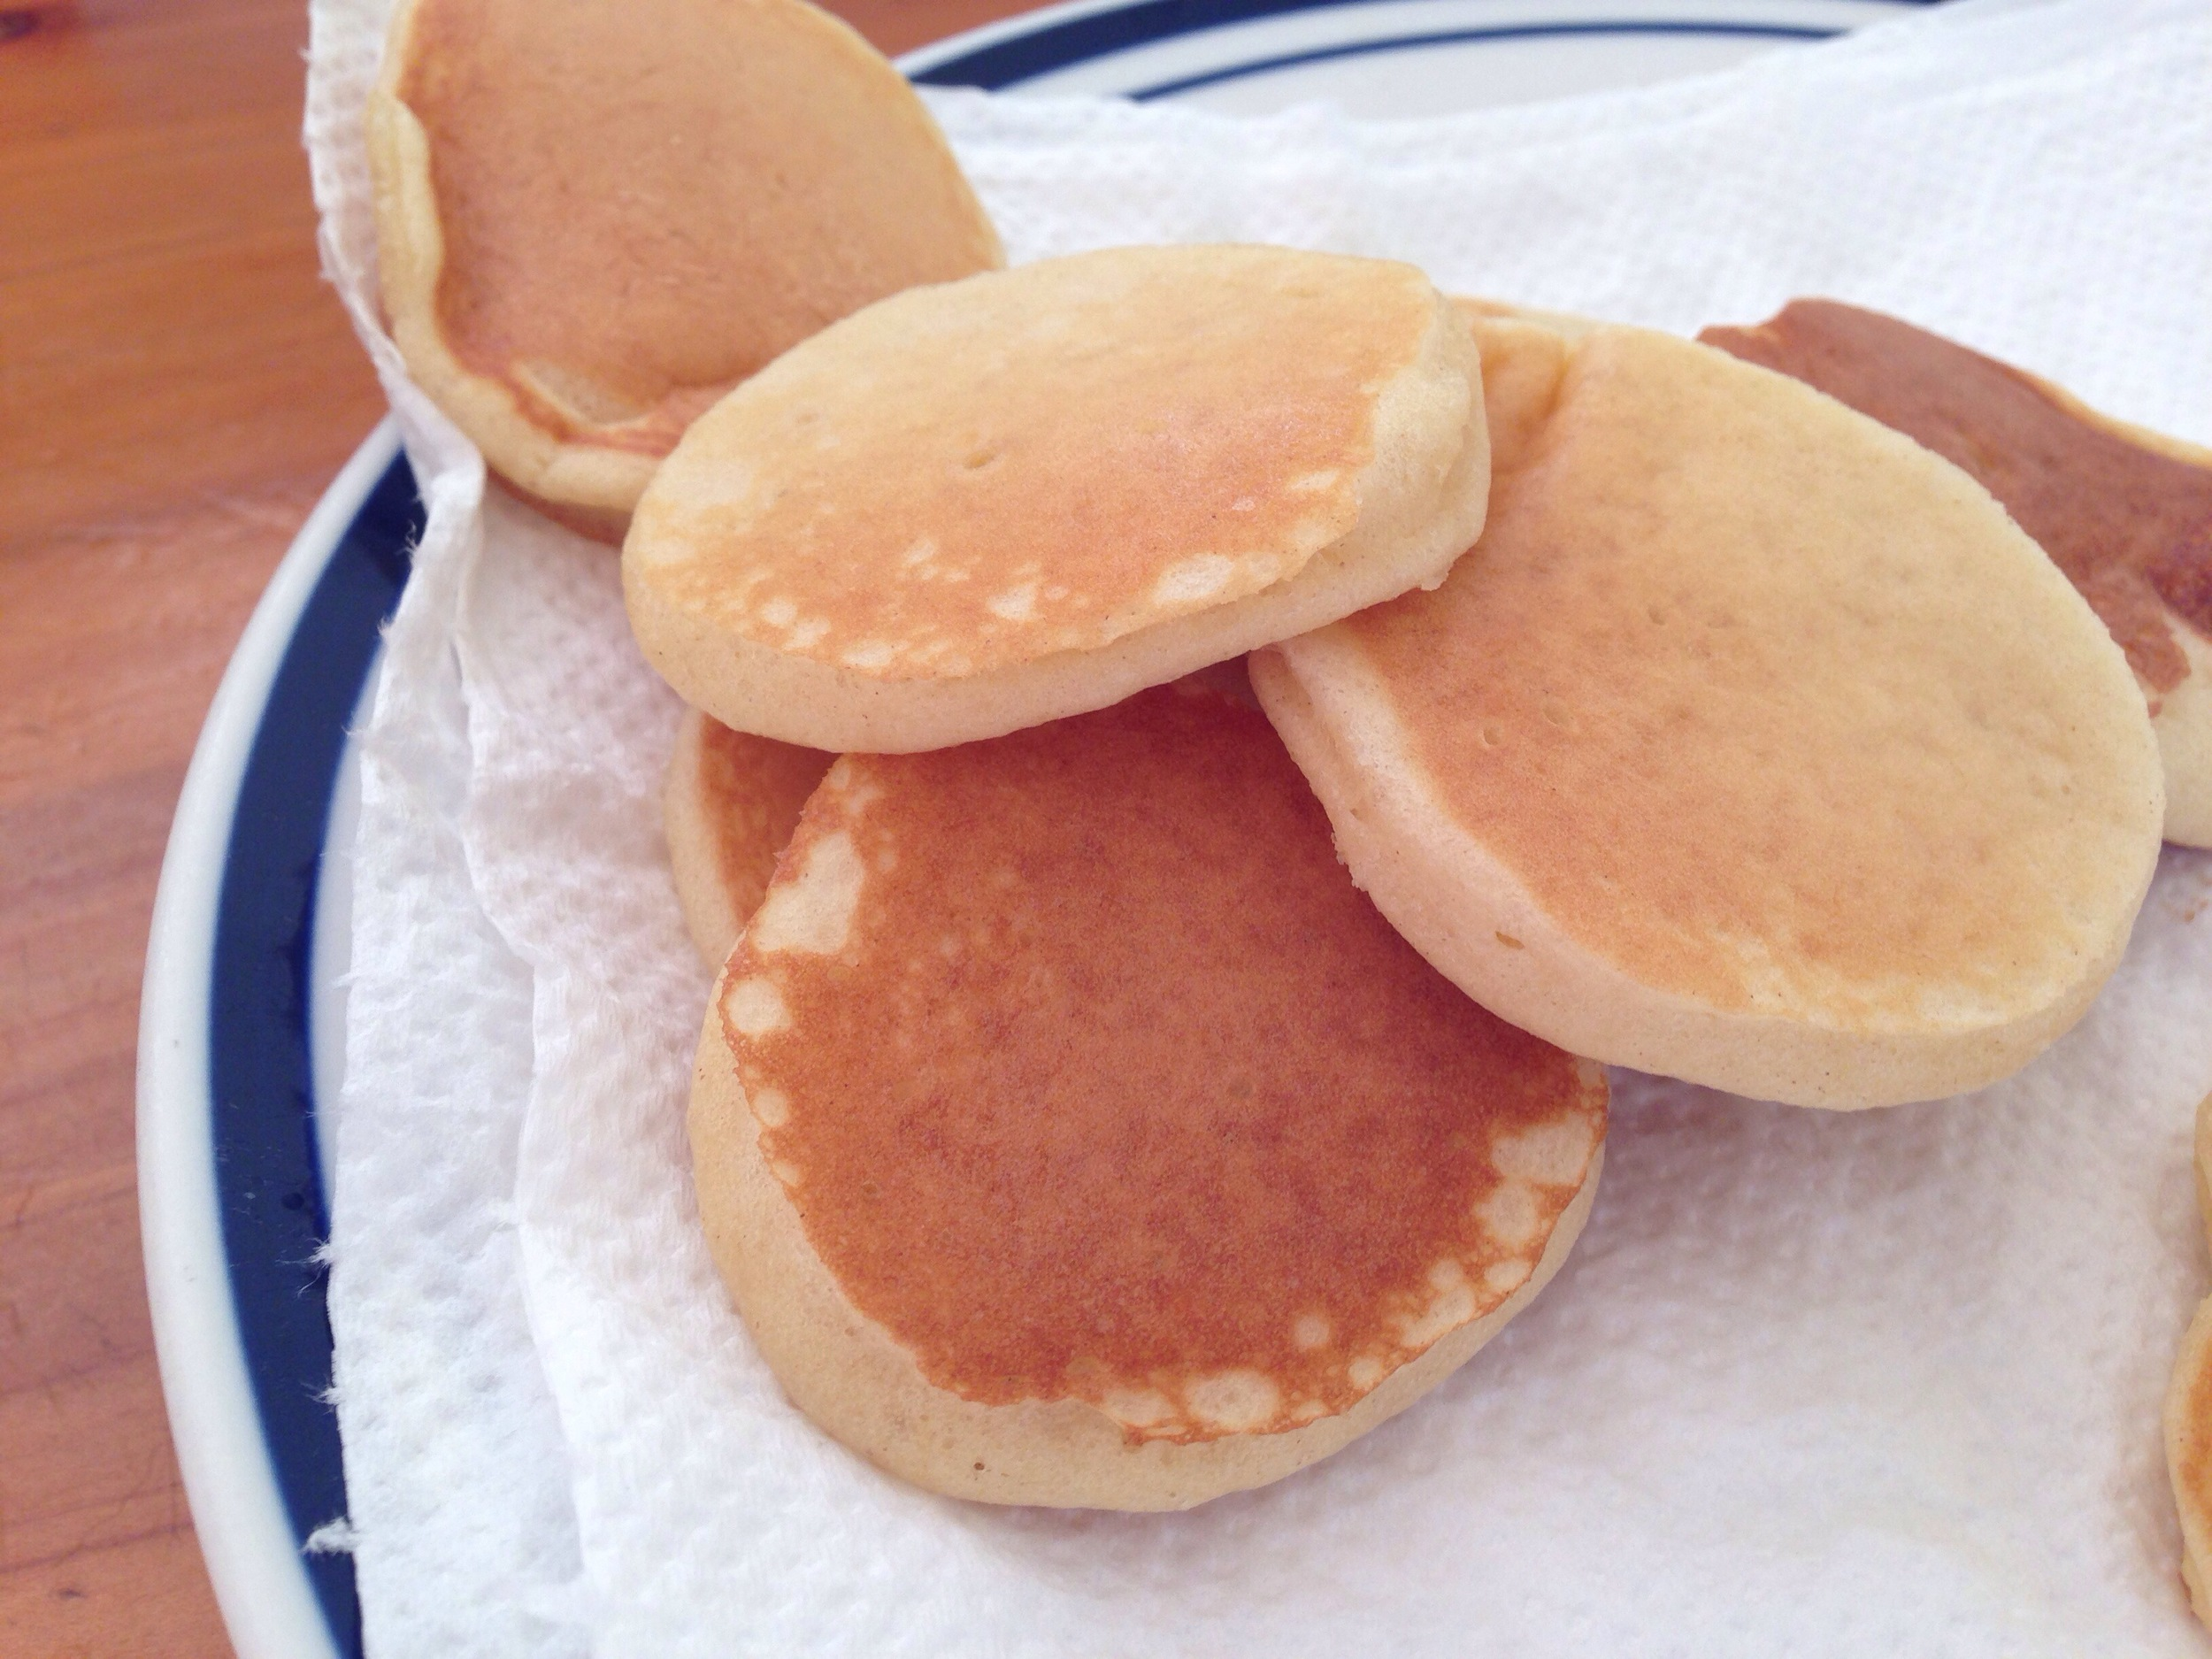 Thrifty Food: The no-mess pikelet recipe and trick